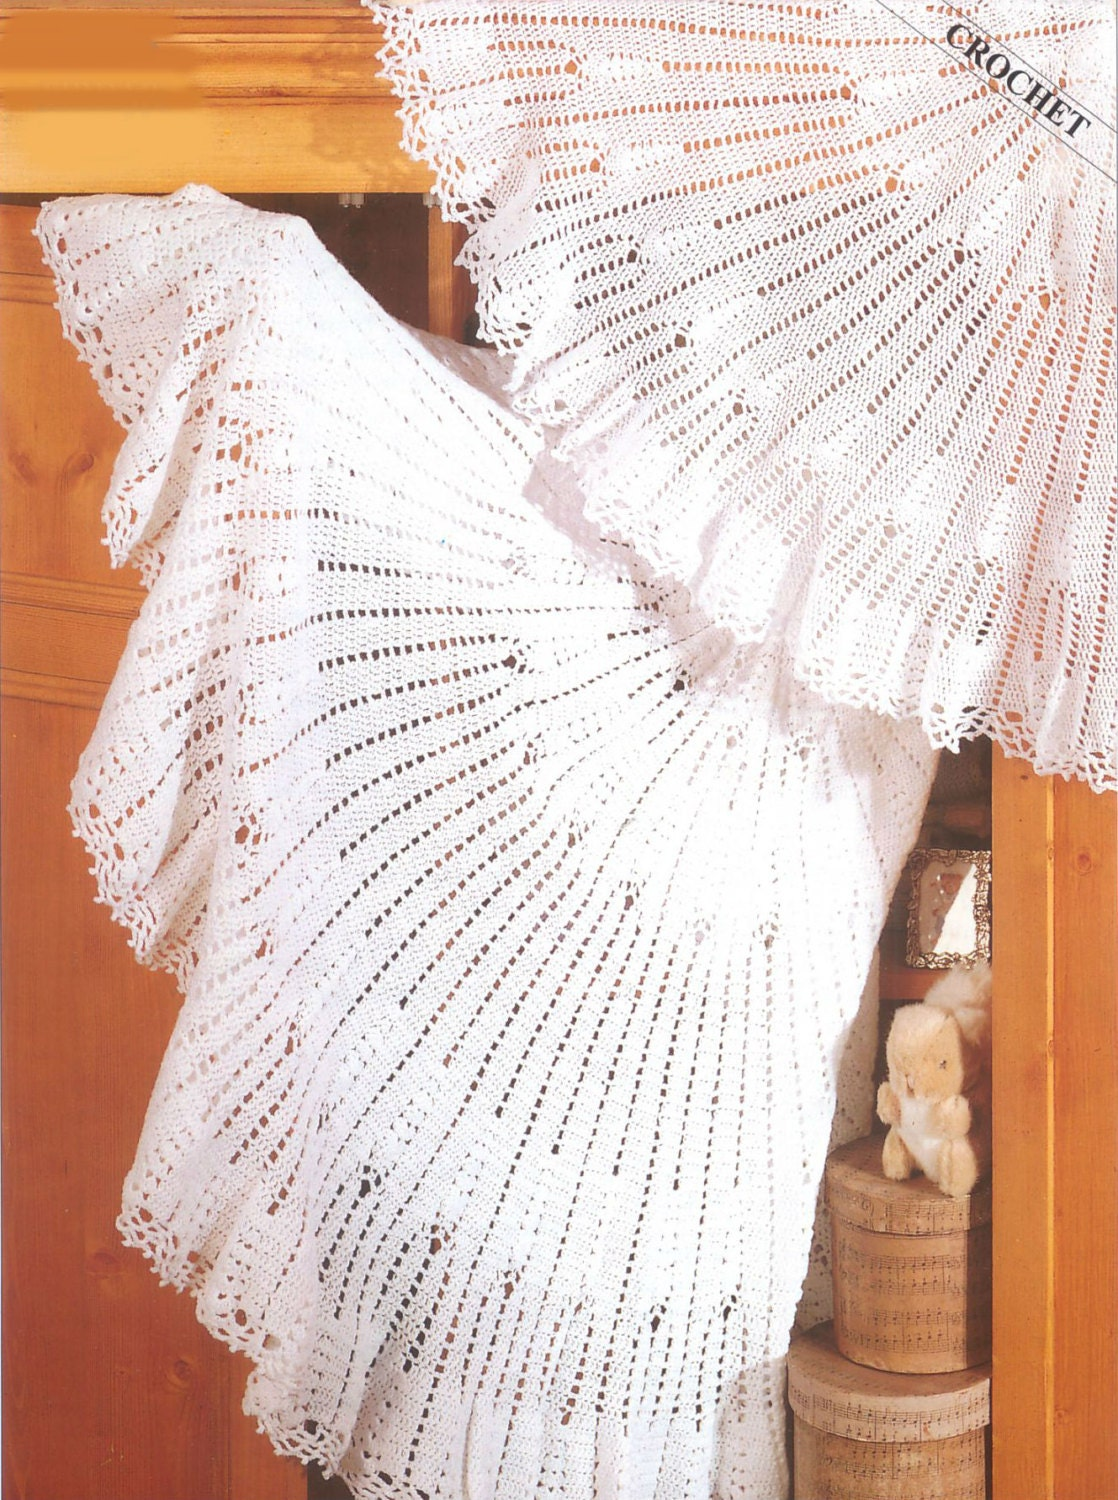 Crochet Patterns For Baby Washcloths : Crochet Circular Lace Shawl Vintage Pattern round Crochet